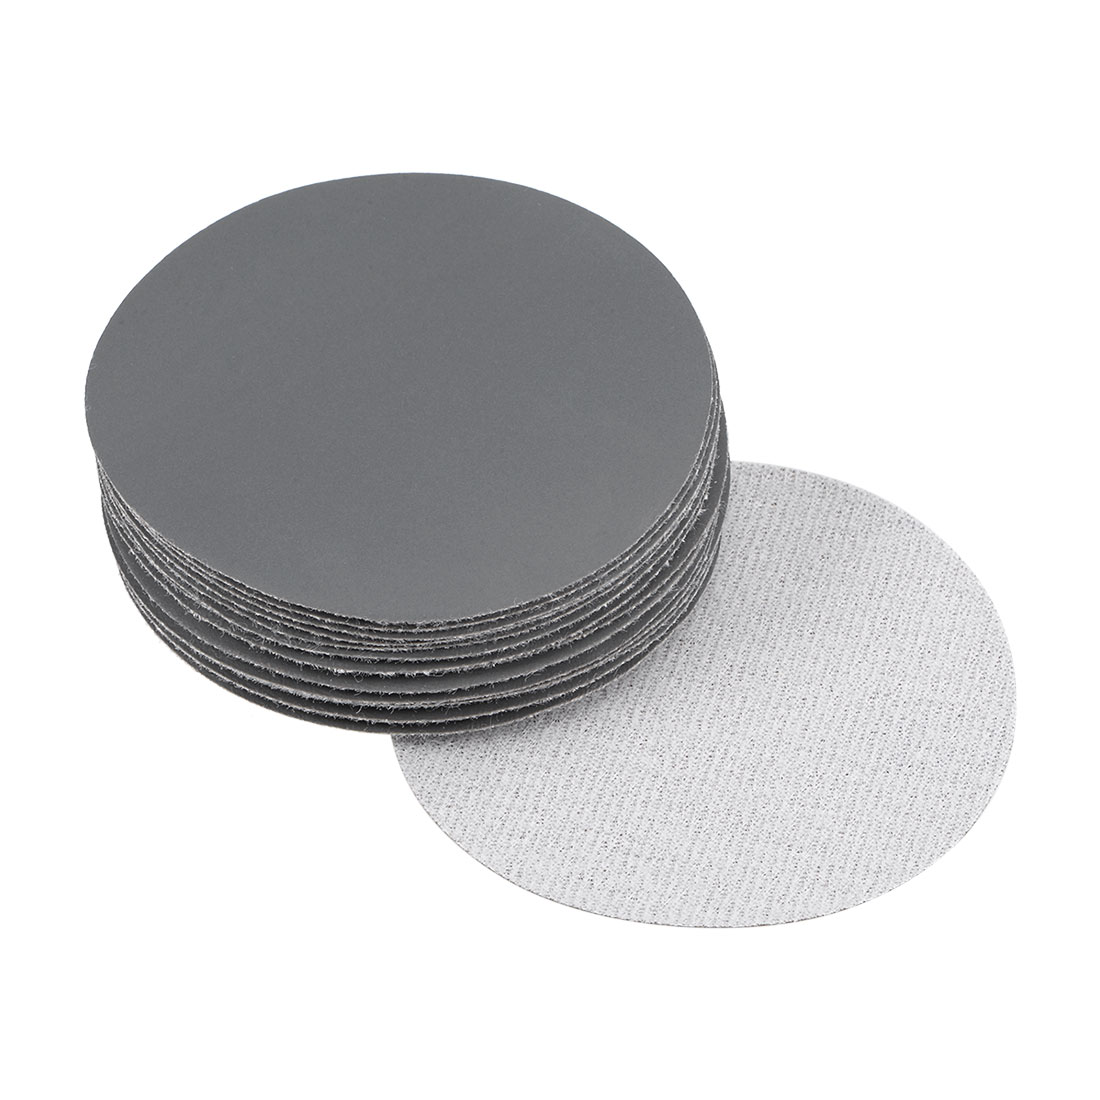 3 inch Wet Dry Discs 1500 Grit Hook and Loop Sanding Disc Silicon Carbide 20pcs